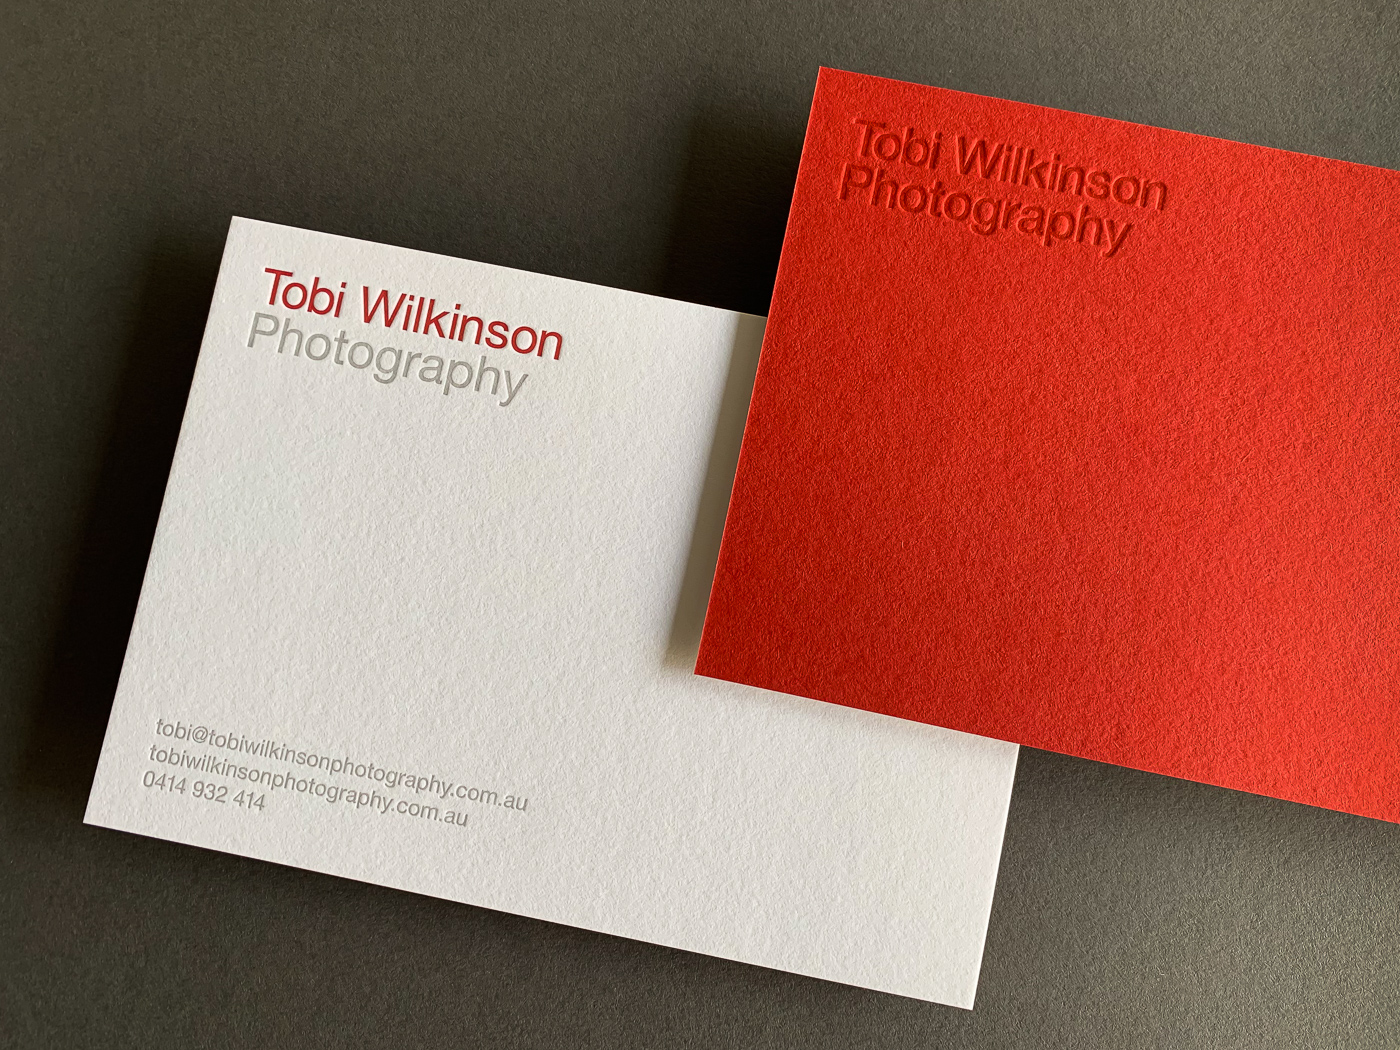 With compliments cards letterpress printed for Tobi Wilkinson on Colorplan Vermilion duplexed to Colorplan Pristine White 4